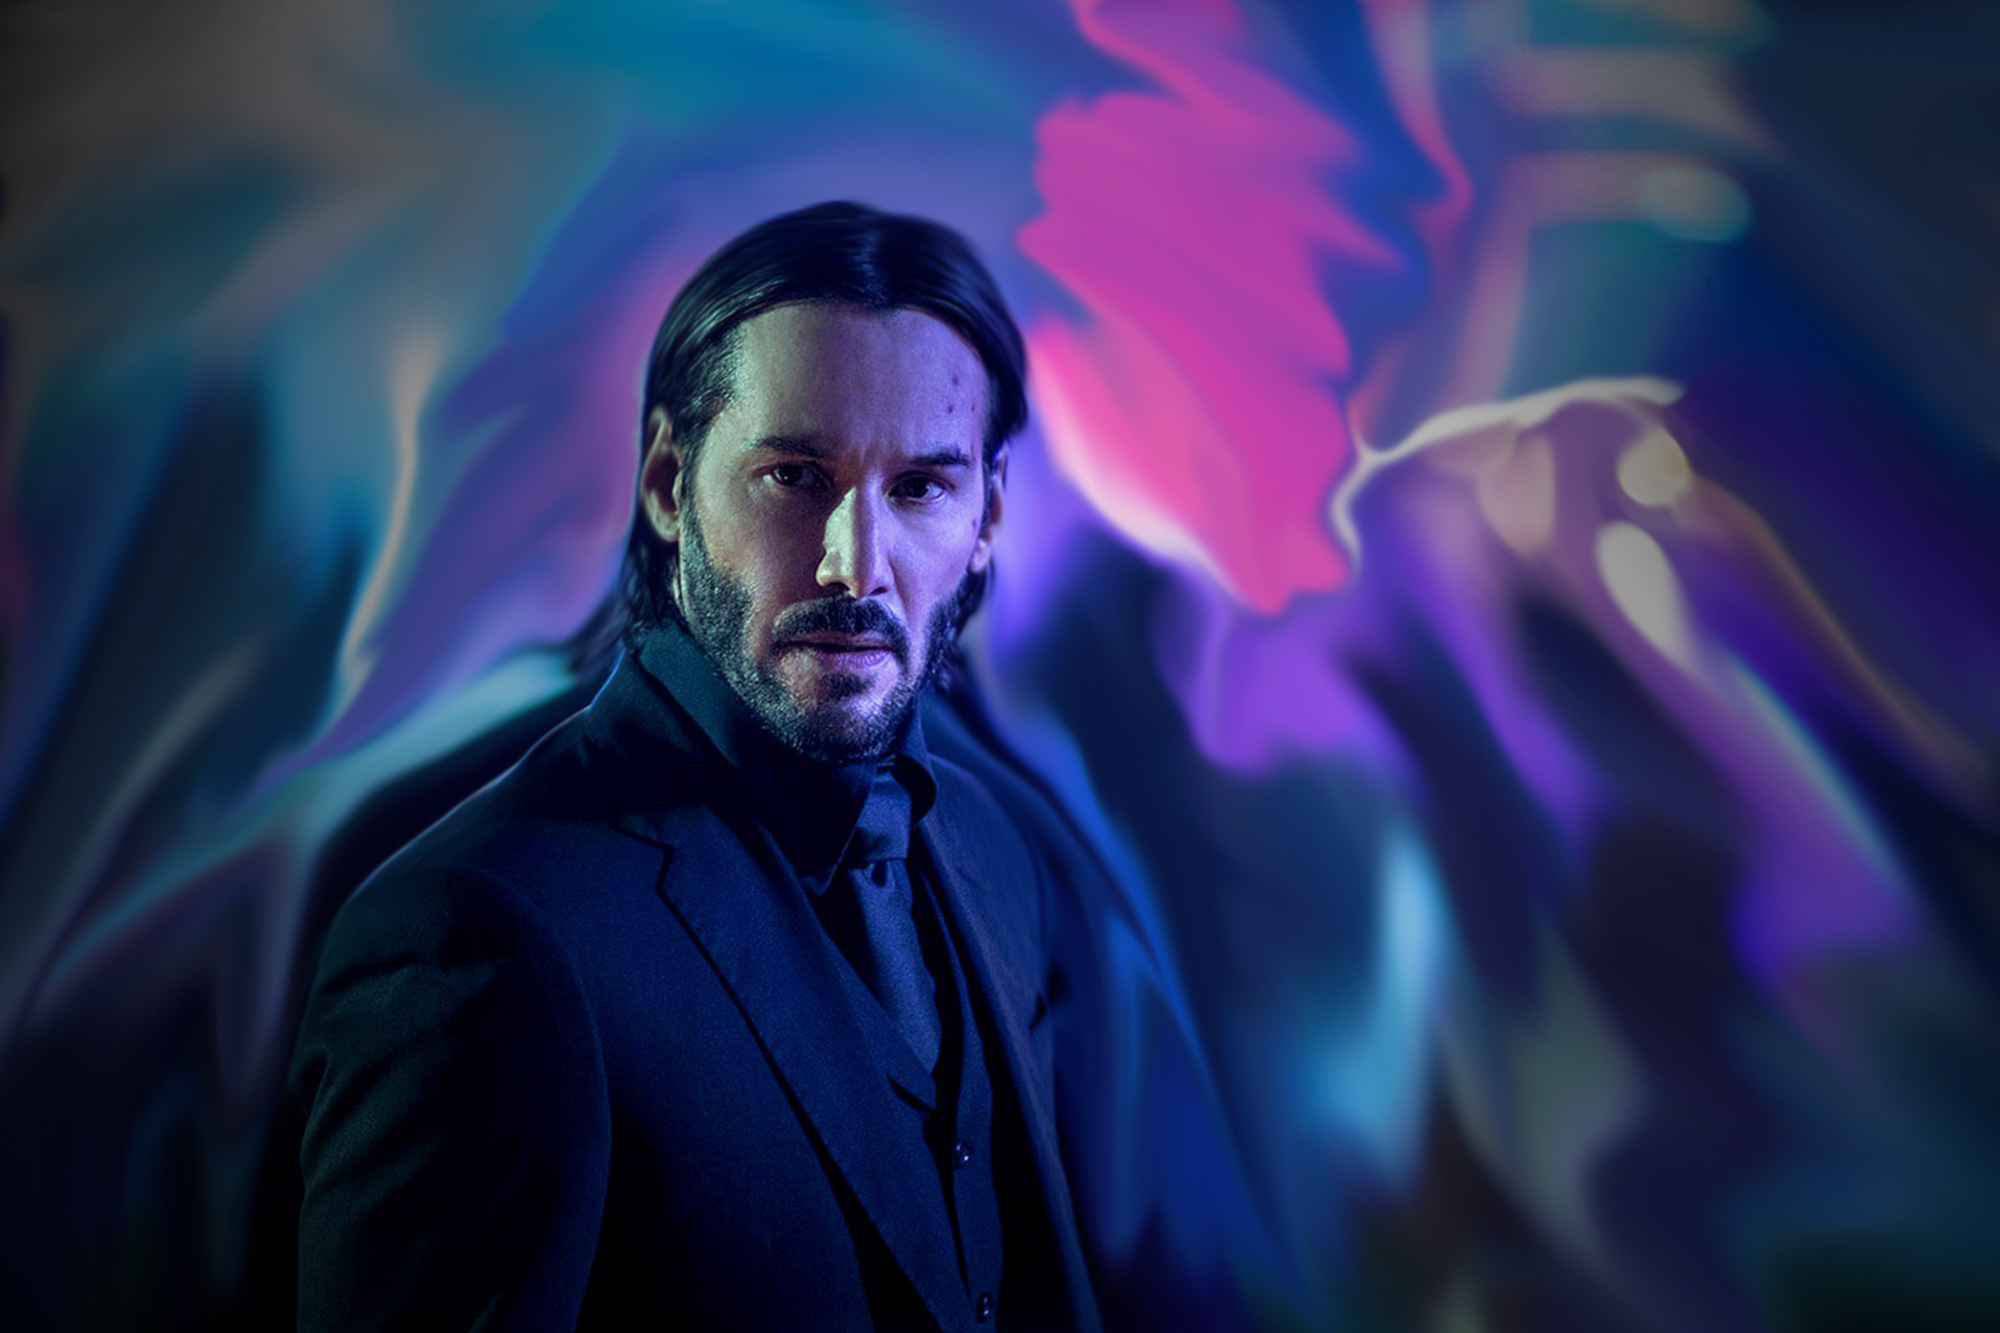 John Wick: John Wick Wallpapers, Pictures, Images